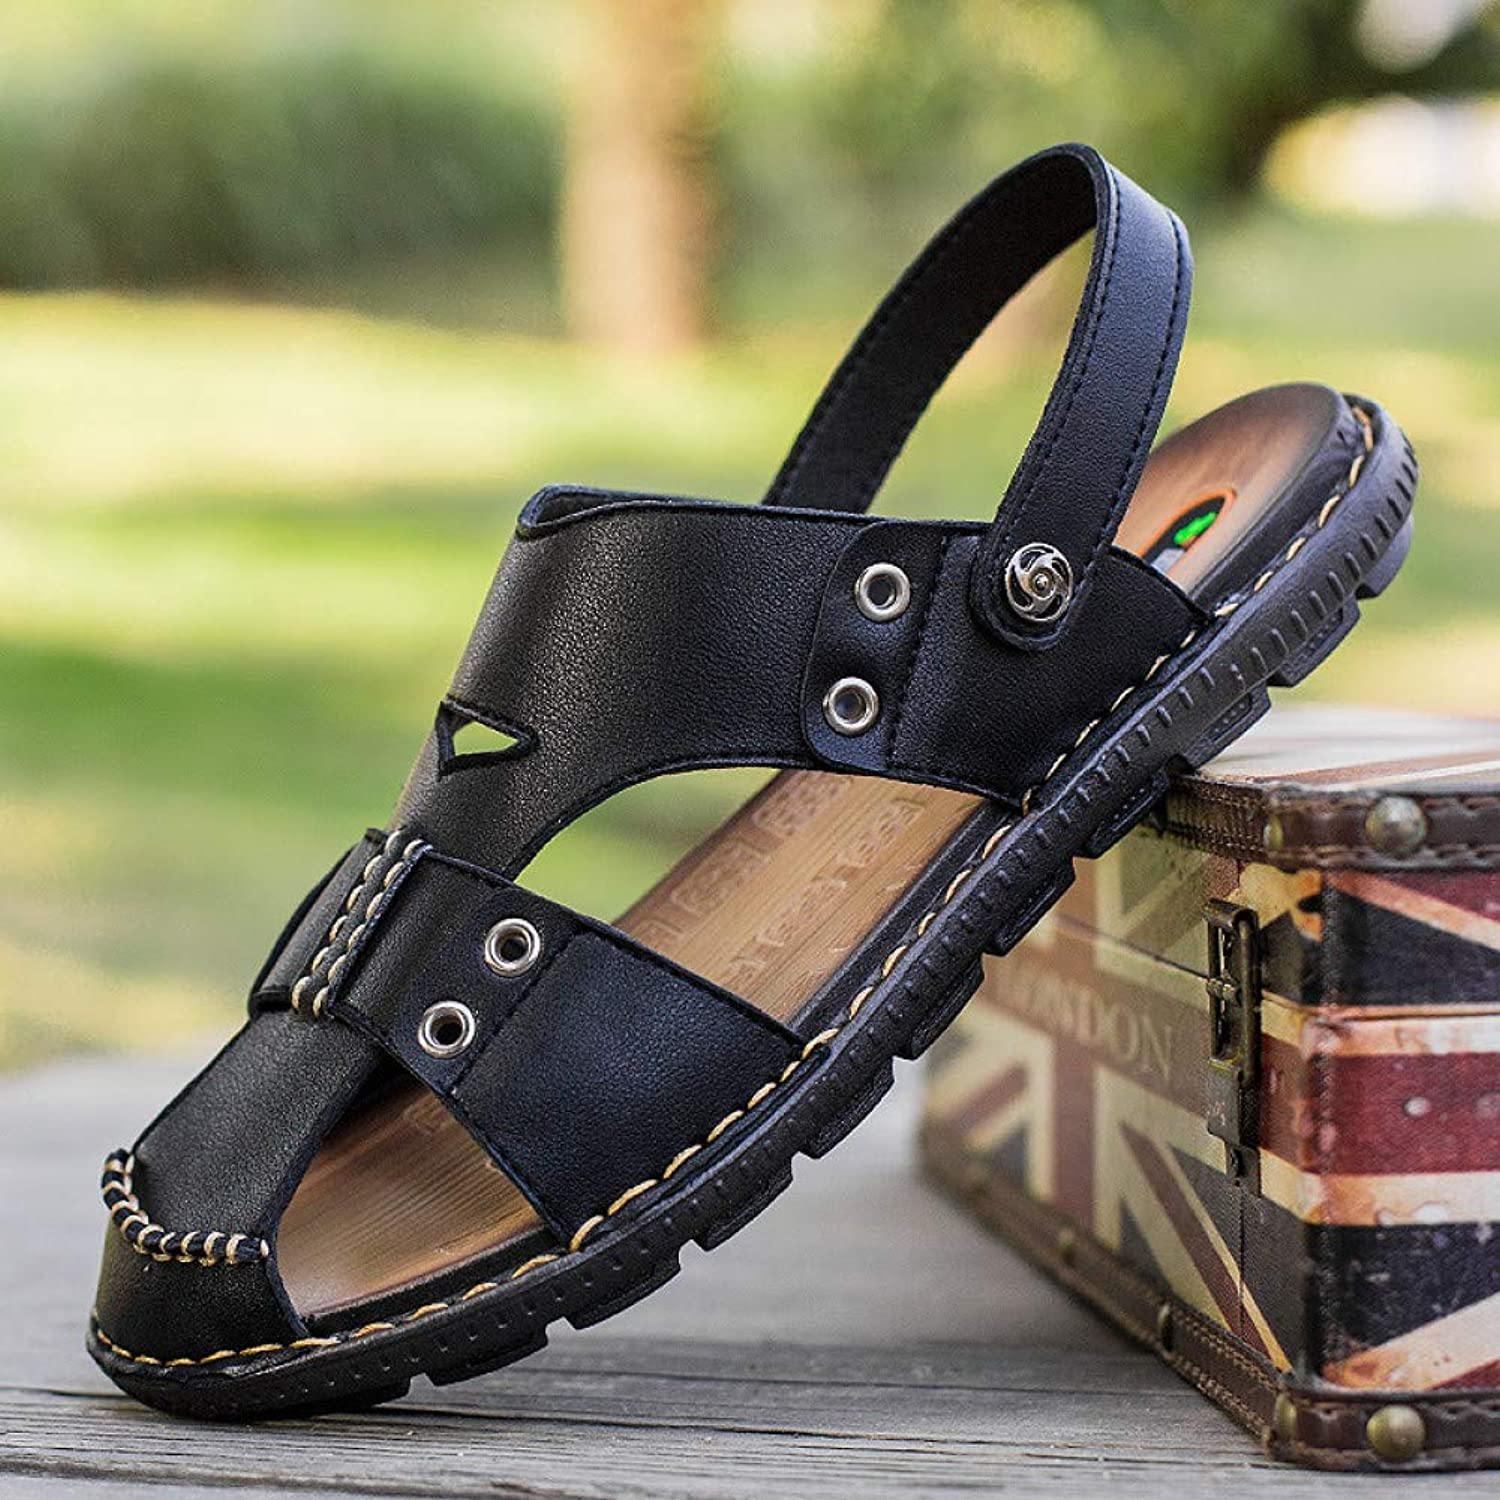 GJLIANGXIE Men'S Sandals Sandals Outdoor Beach Vacation Men'S Sandals Korean Version Of The Breathable British Casual Trend Of The Beach shoes Sandals And Slippers